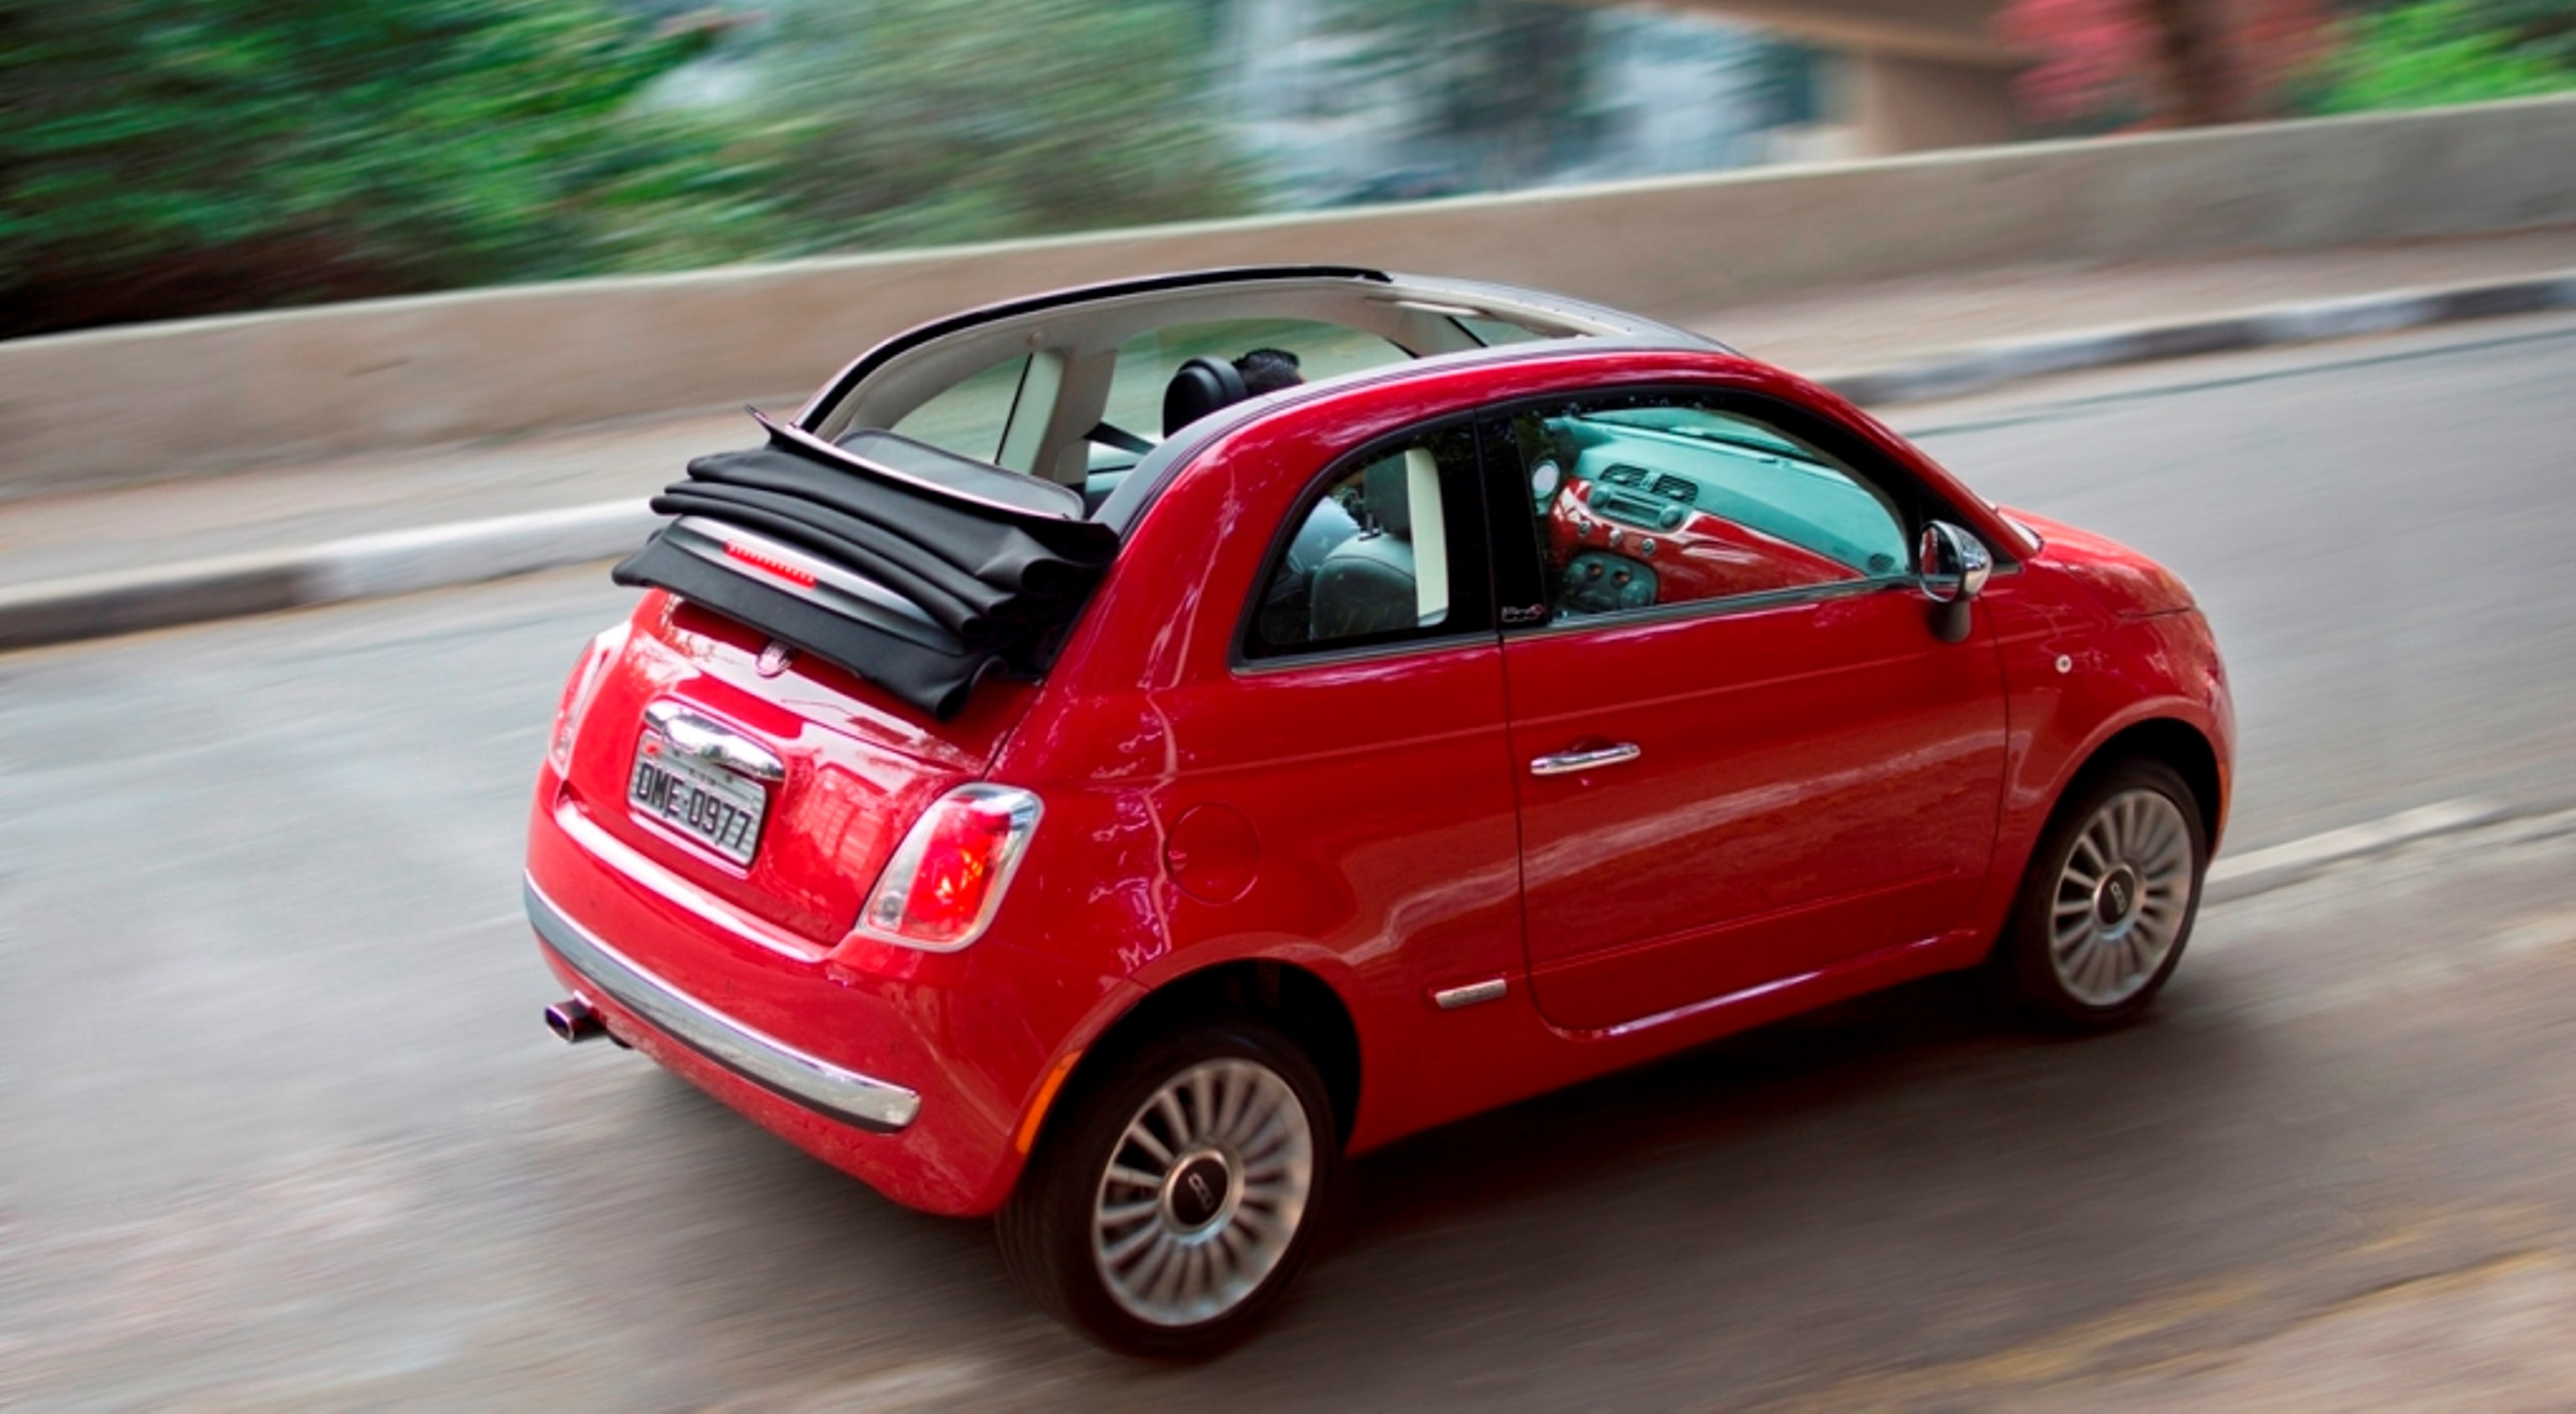 2014 Fiat Abarth 500 Convertible Review 2017 2018 Best